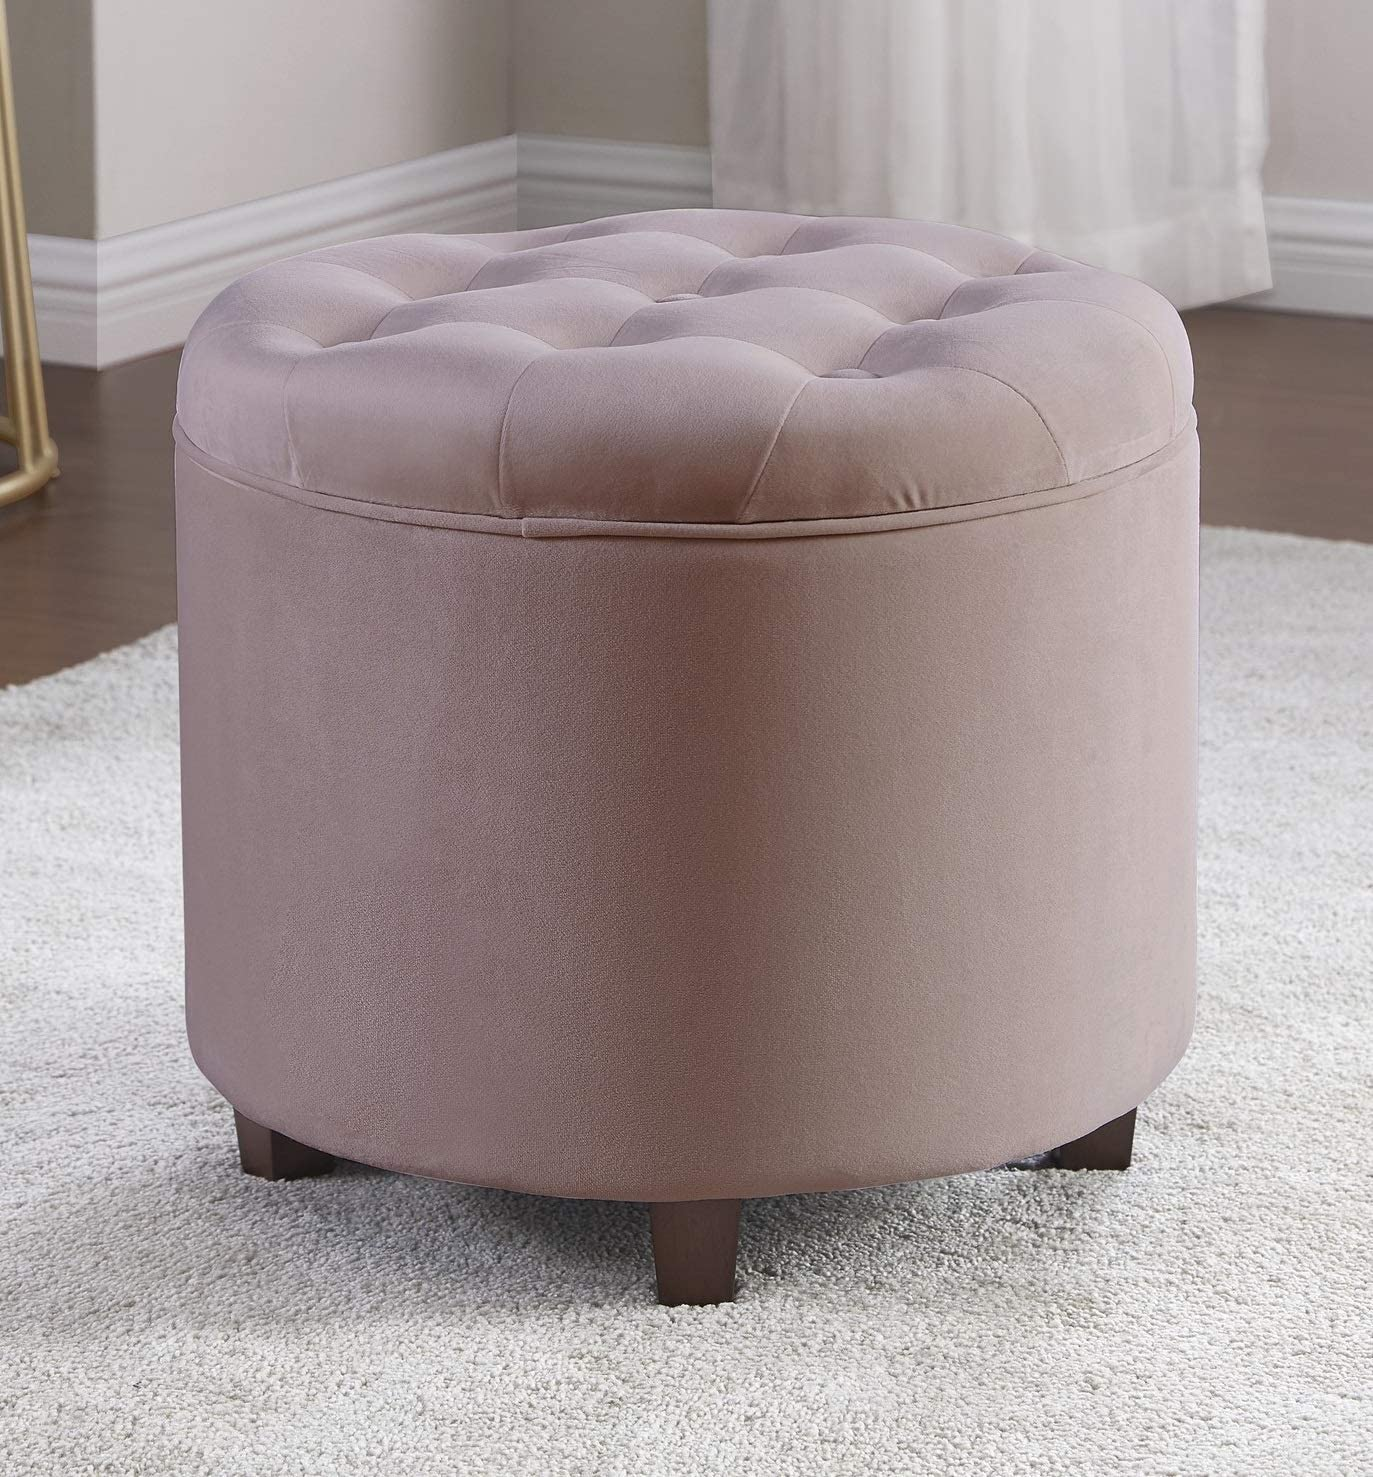 Ornavo Home Donovan Round Tufted Velvet Storage Ottoman Foot Rest Stool/Seat - the best ottoman chair for the money